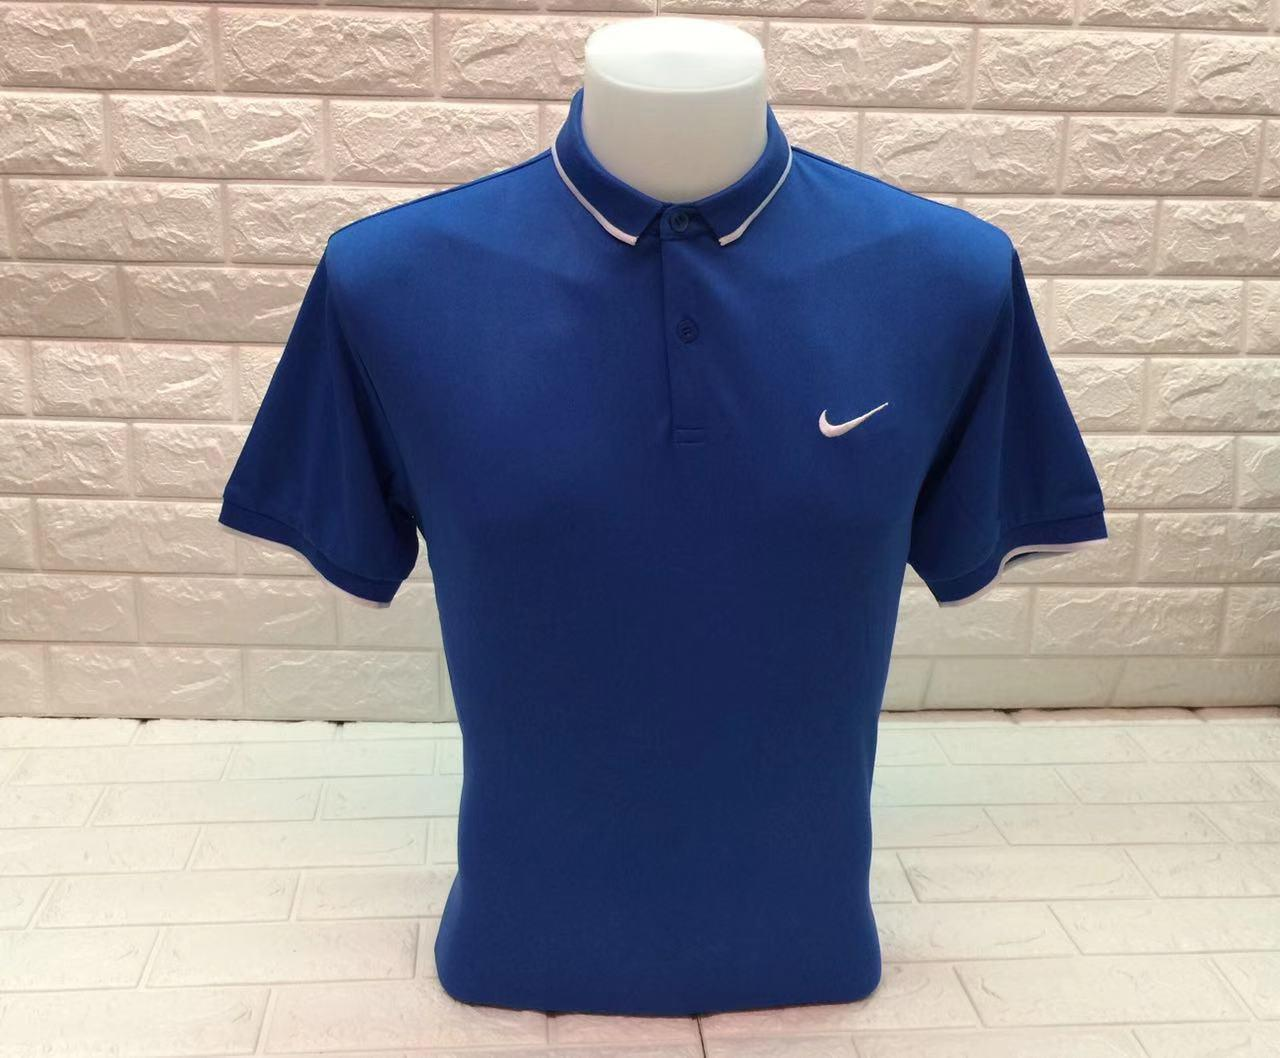 94b3a4506 Shirt for Men for sale - Mens Fashion Shirt Online Deals   Prices in  Philippines